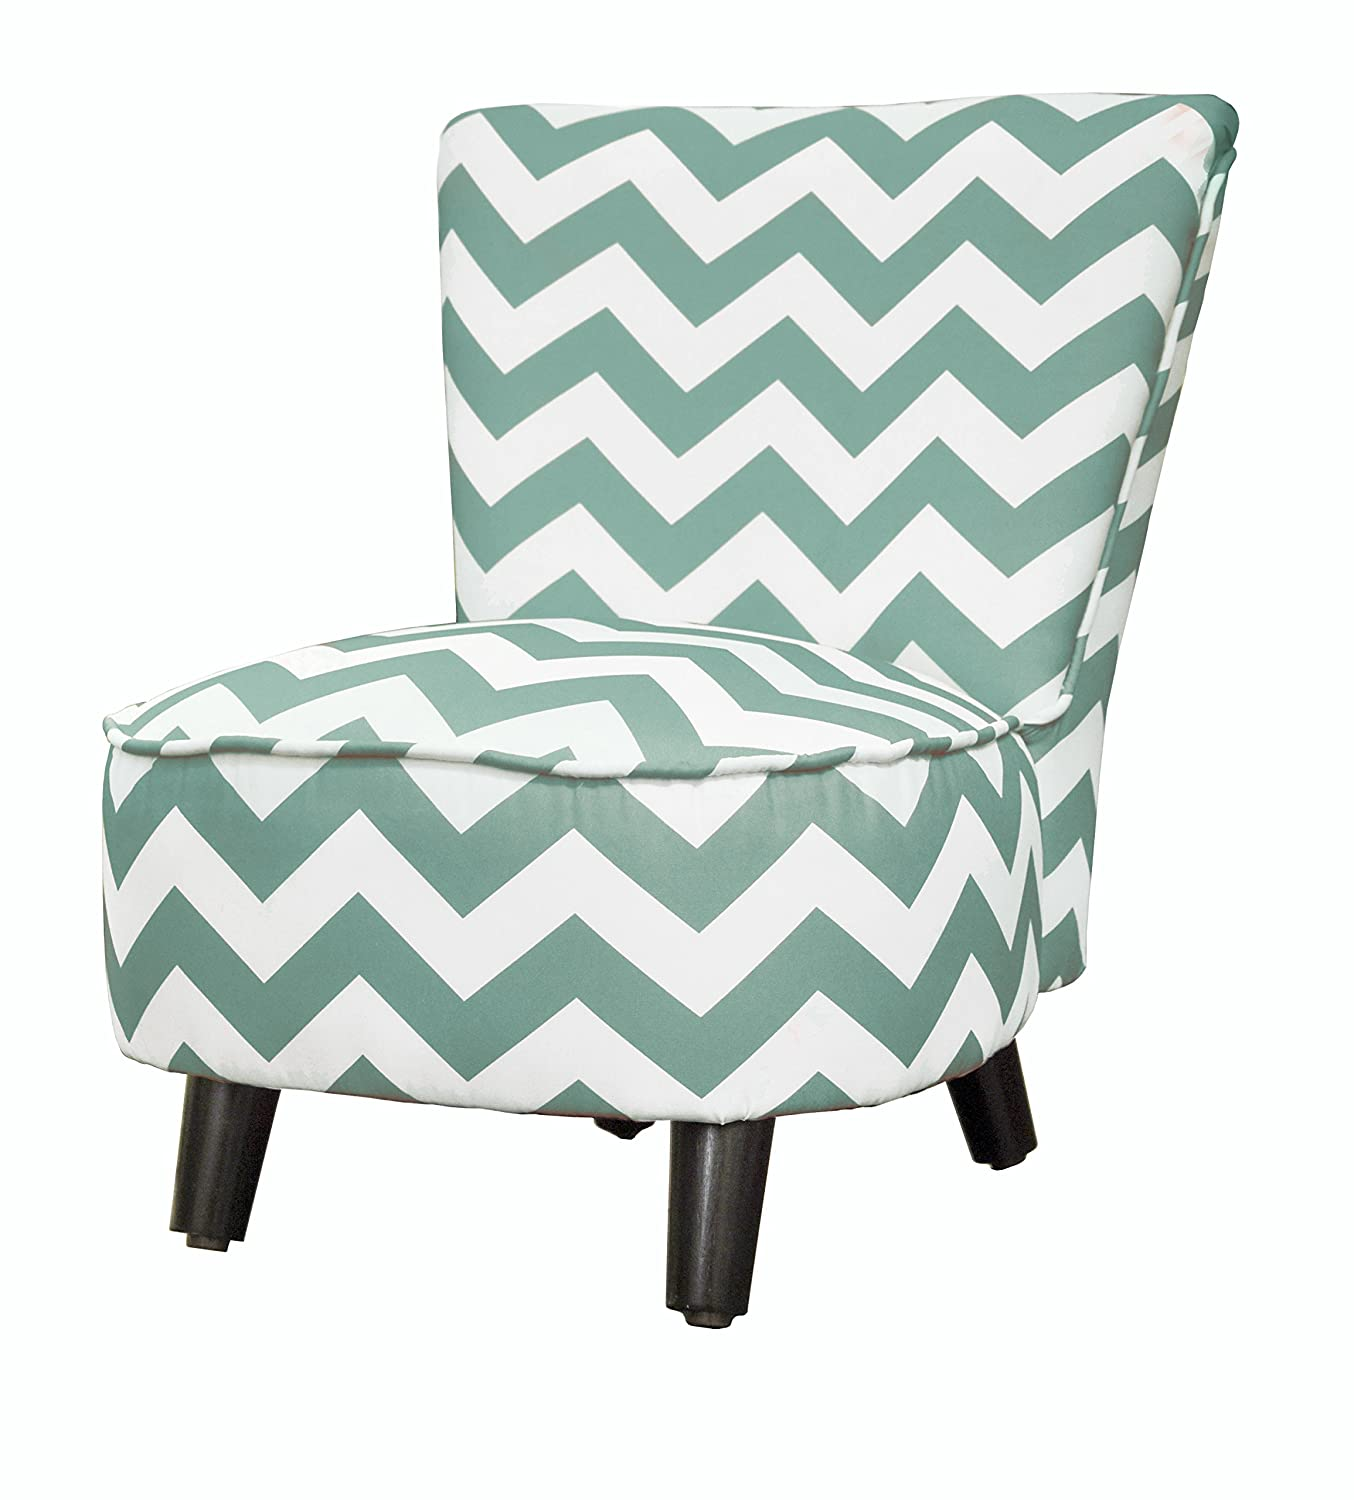 amazoncom heritage kids toddler slipper chair chevron teal toys u0026 games